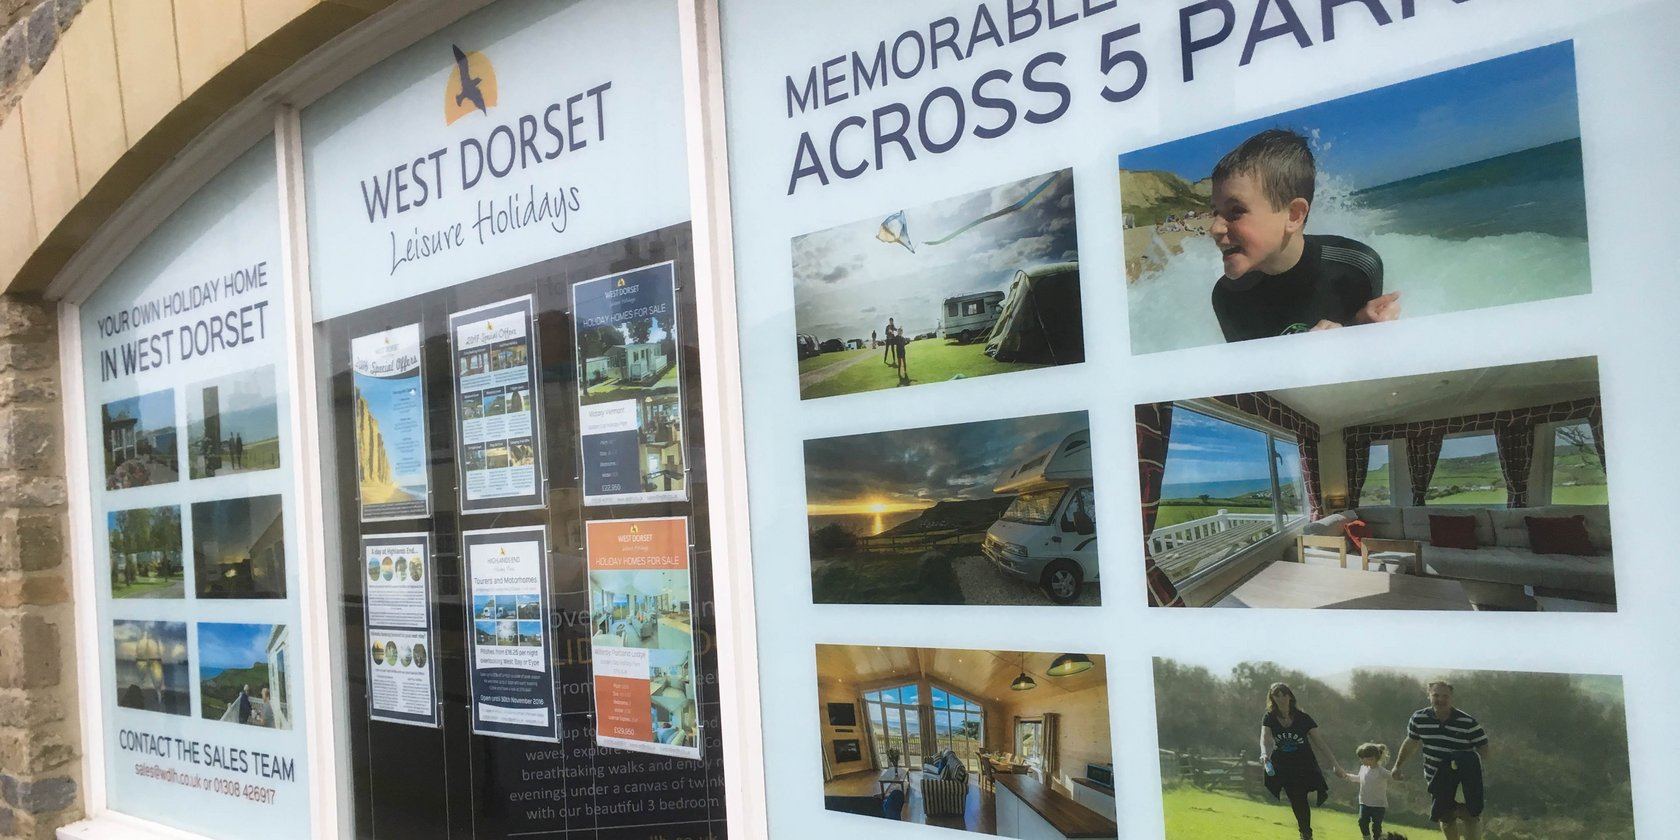 Window Graphics for West Dorset Leisure Holidays